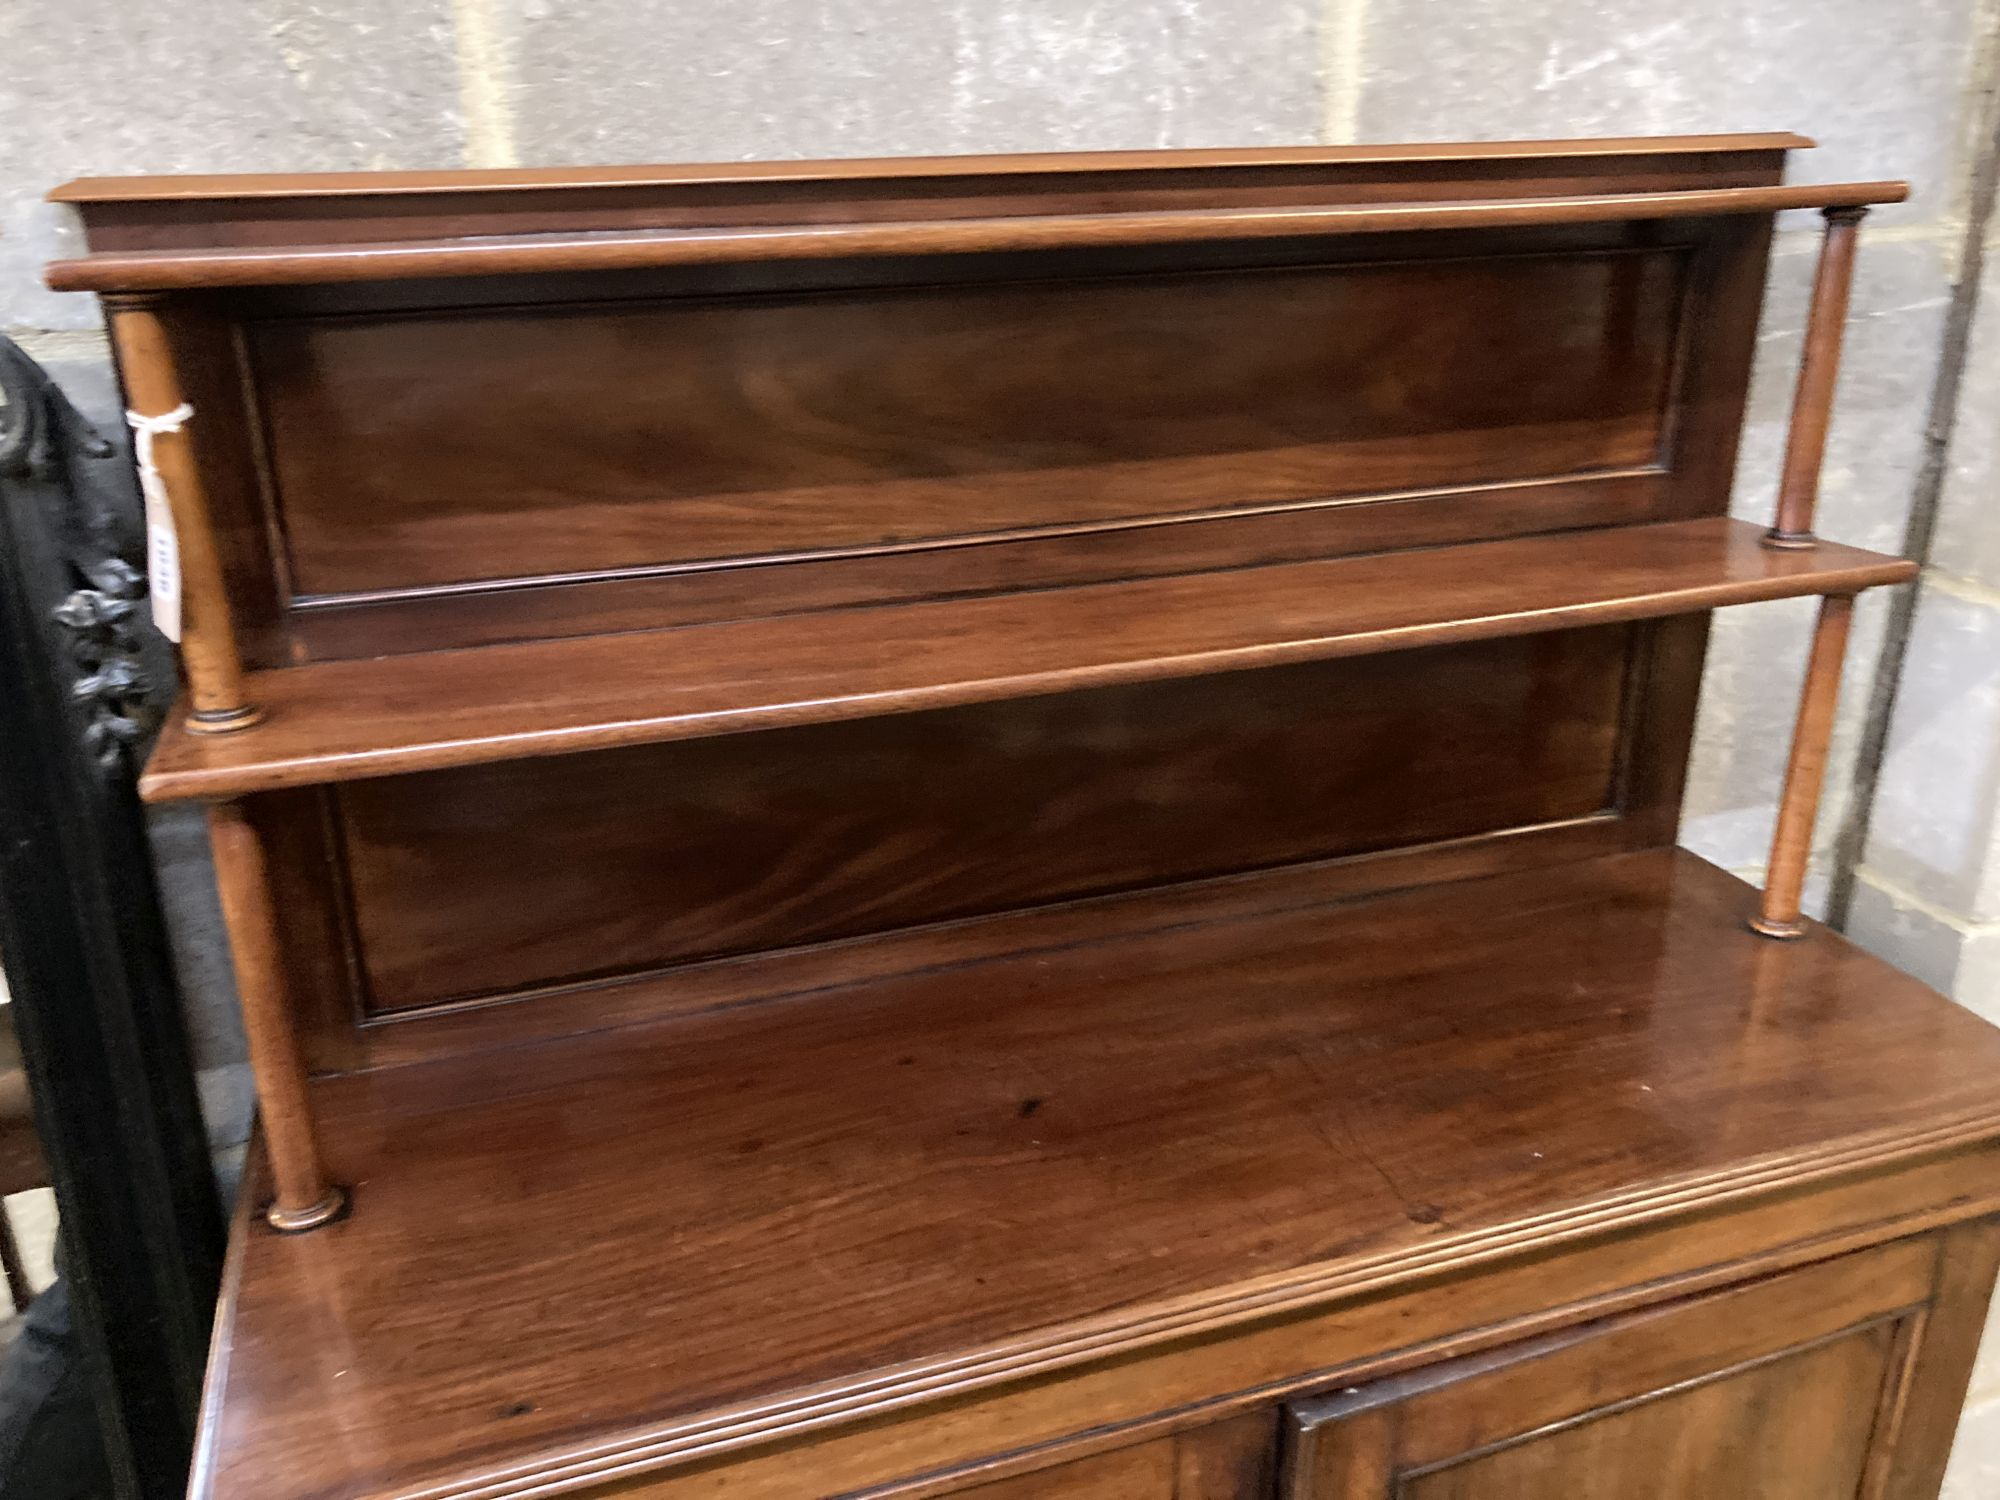 An early Victorian mahogany chiffonier, width 96cm, depth 32cm, height 146cm - Image 2 of 3